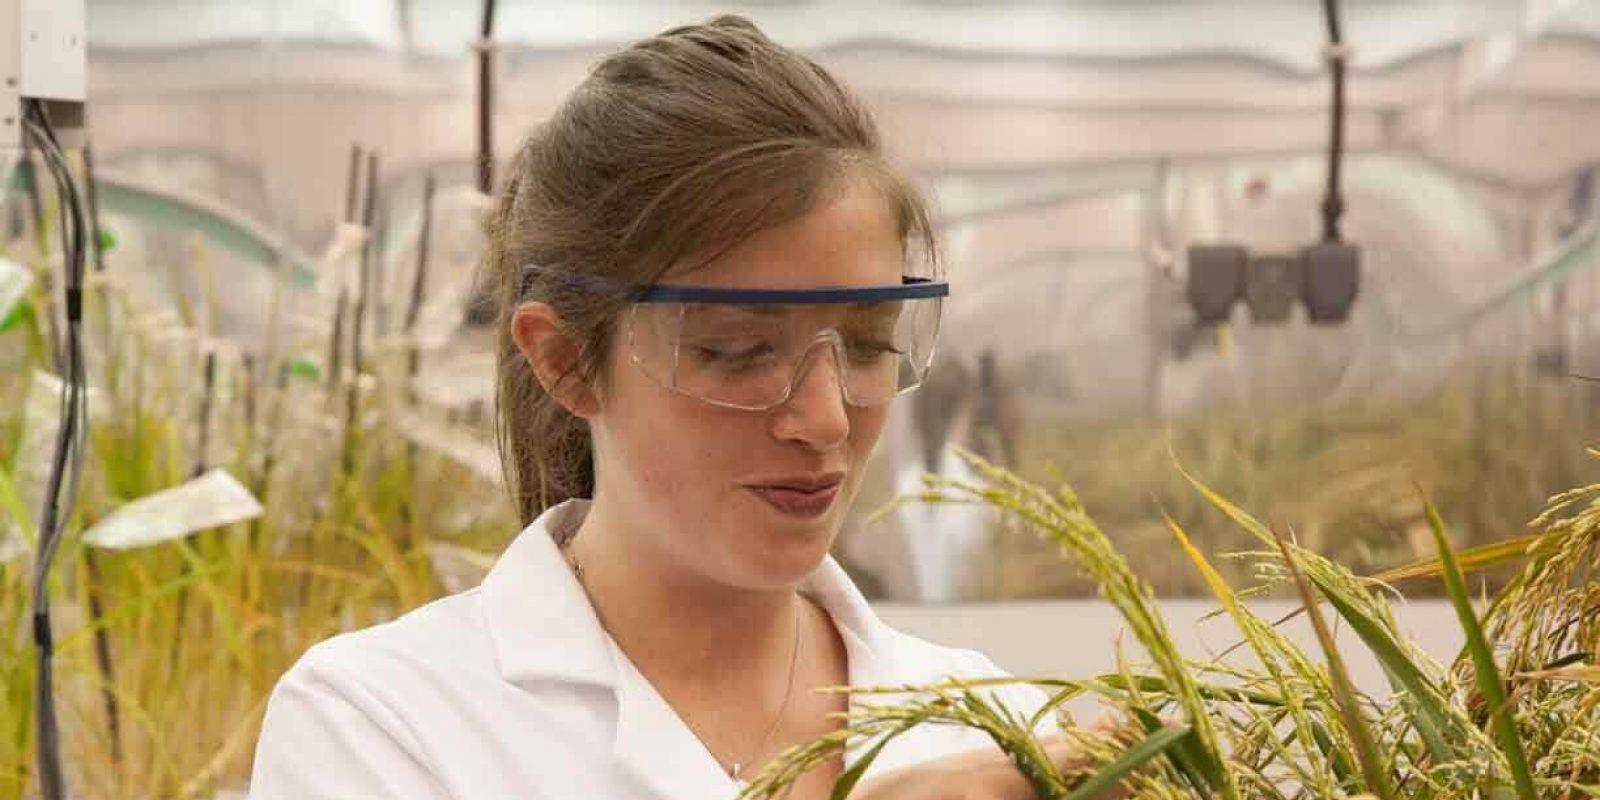 sheffield-university-researcher-plant-growth-room 13